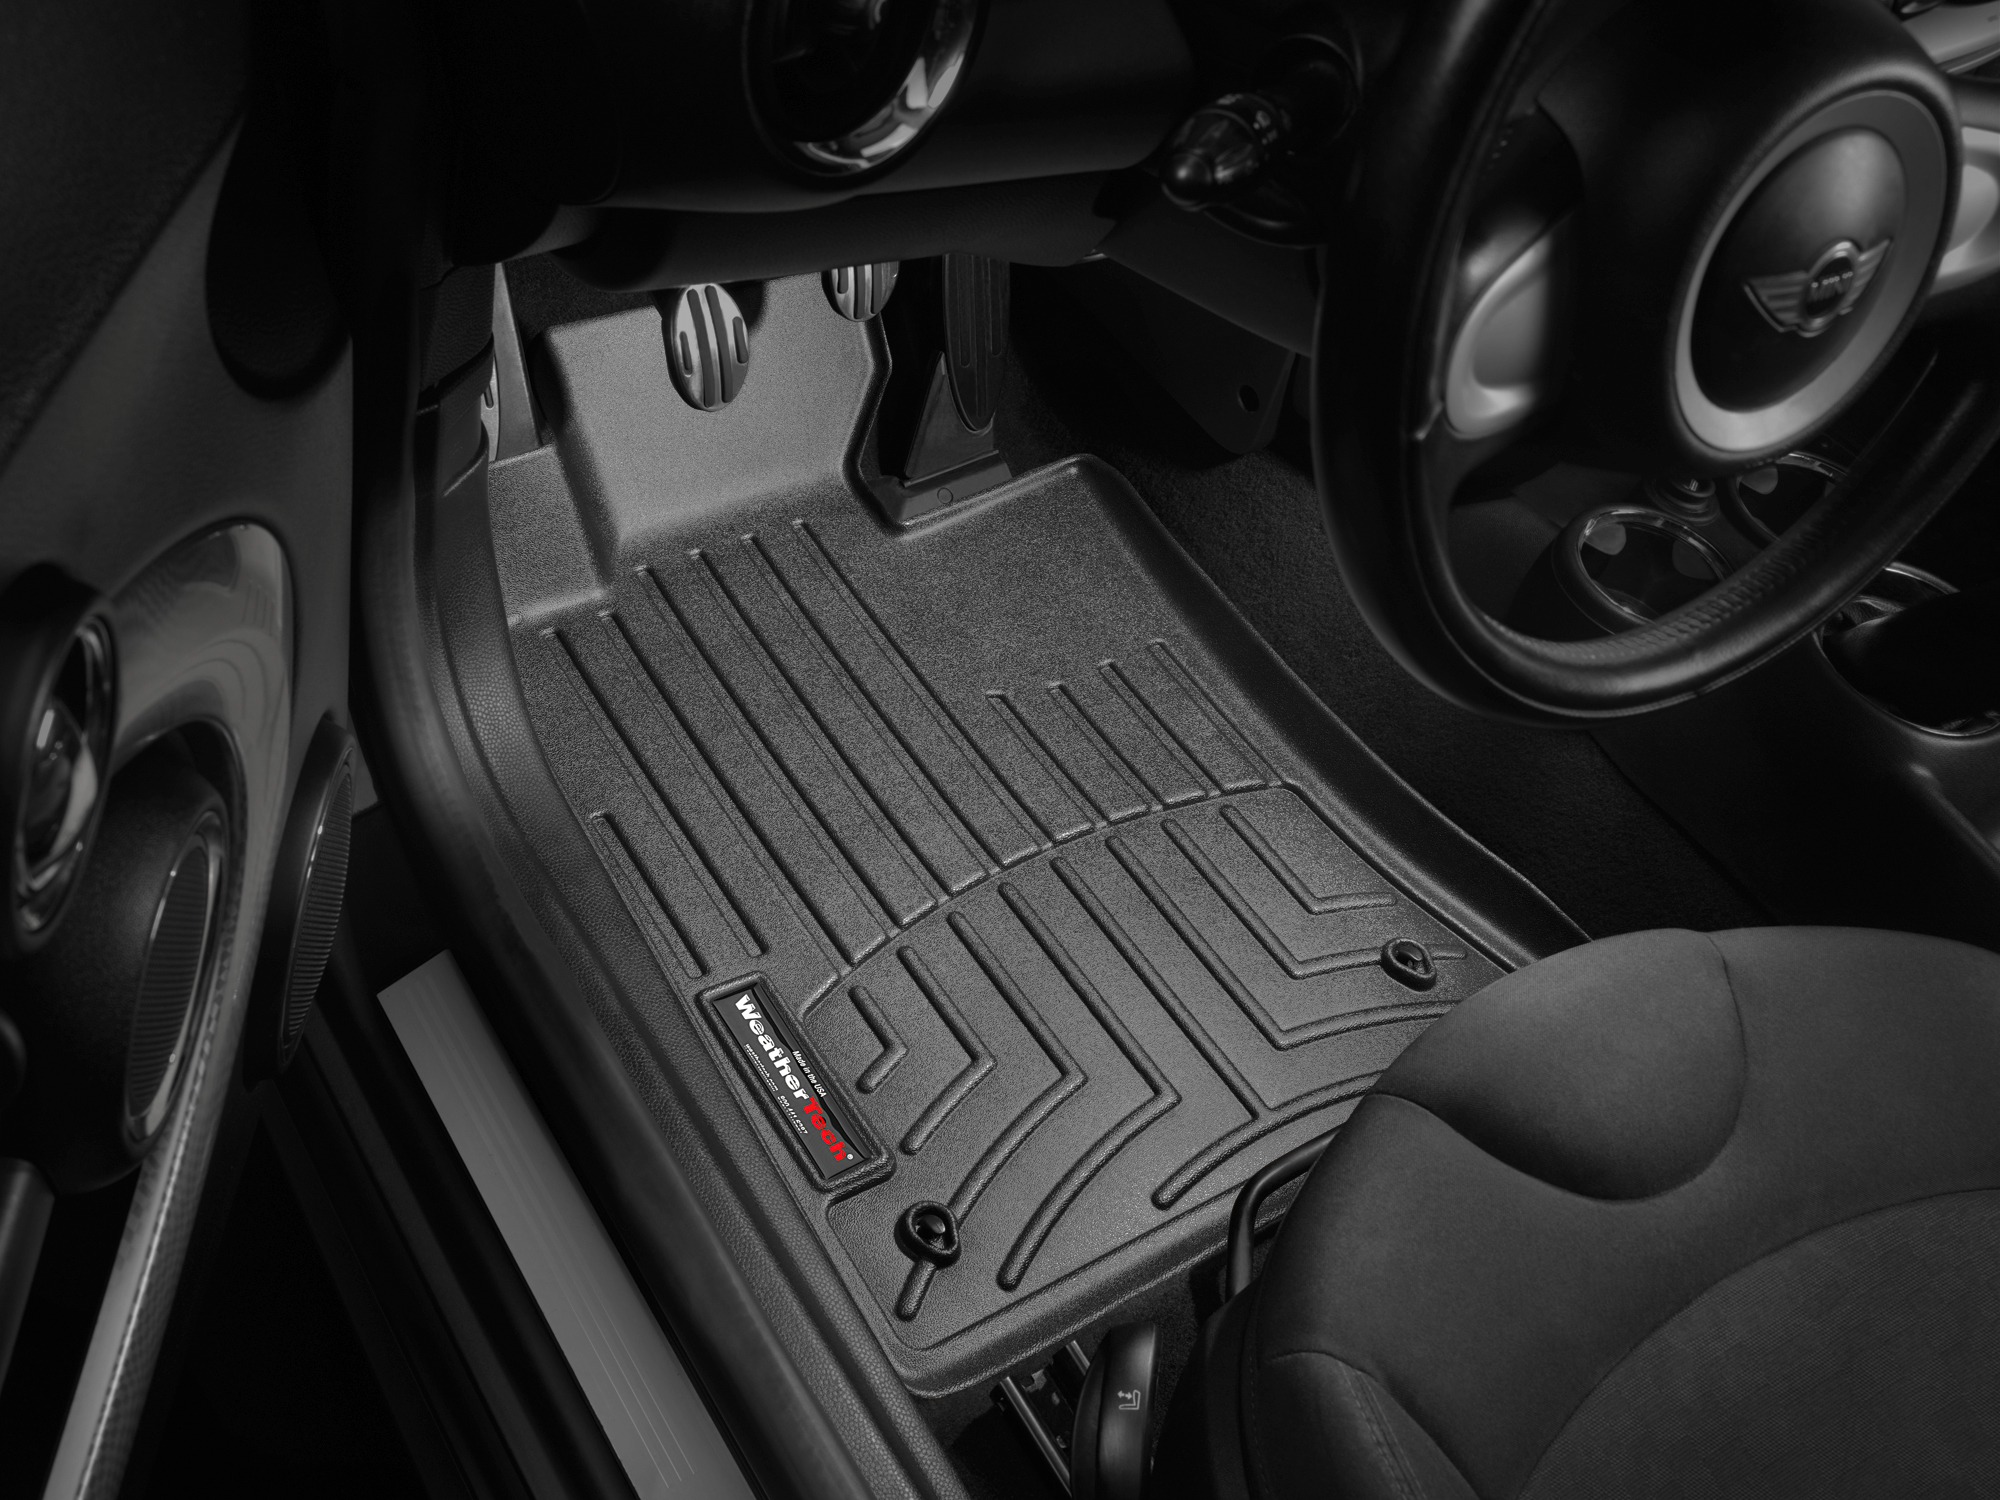 2015 Mini Roadster Avm Hd Floor Mats Heavy Duty Flexible Trim To